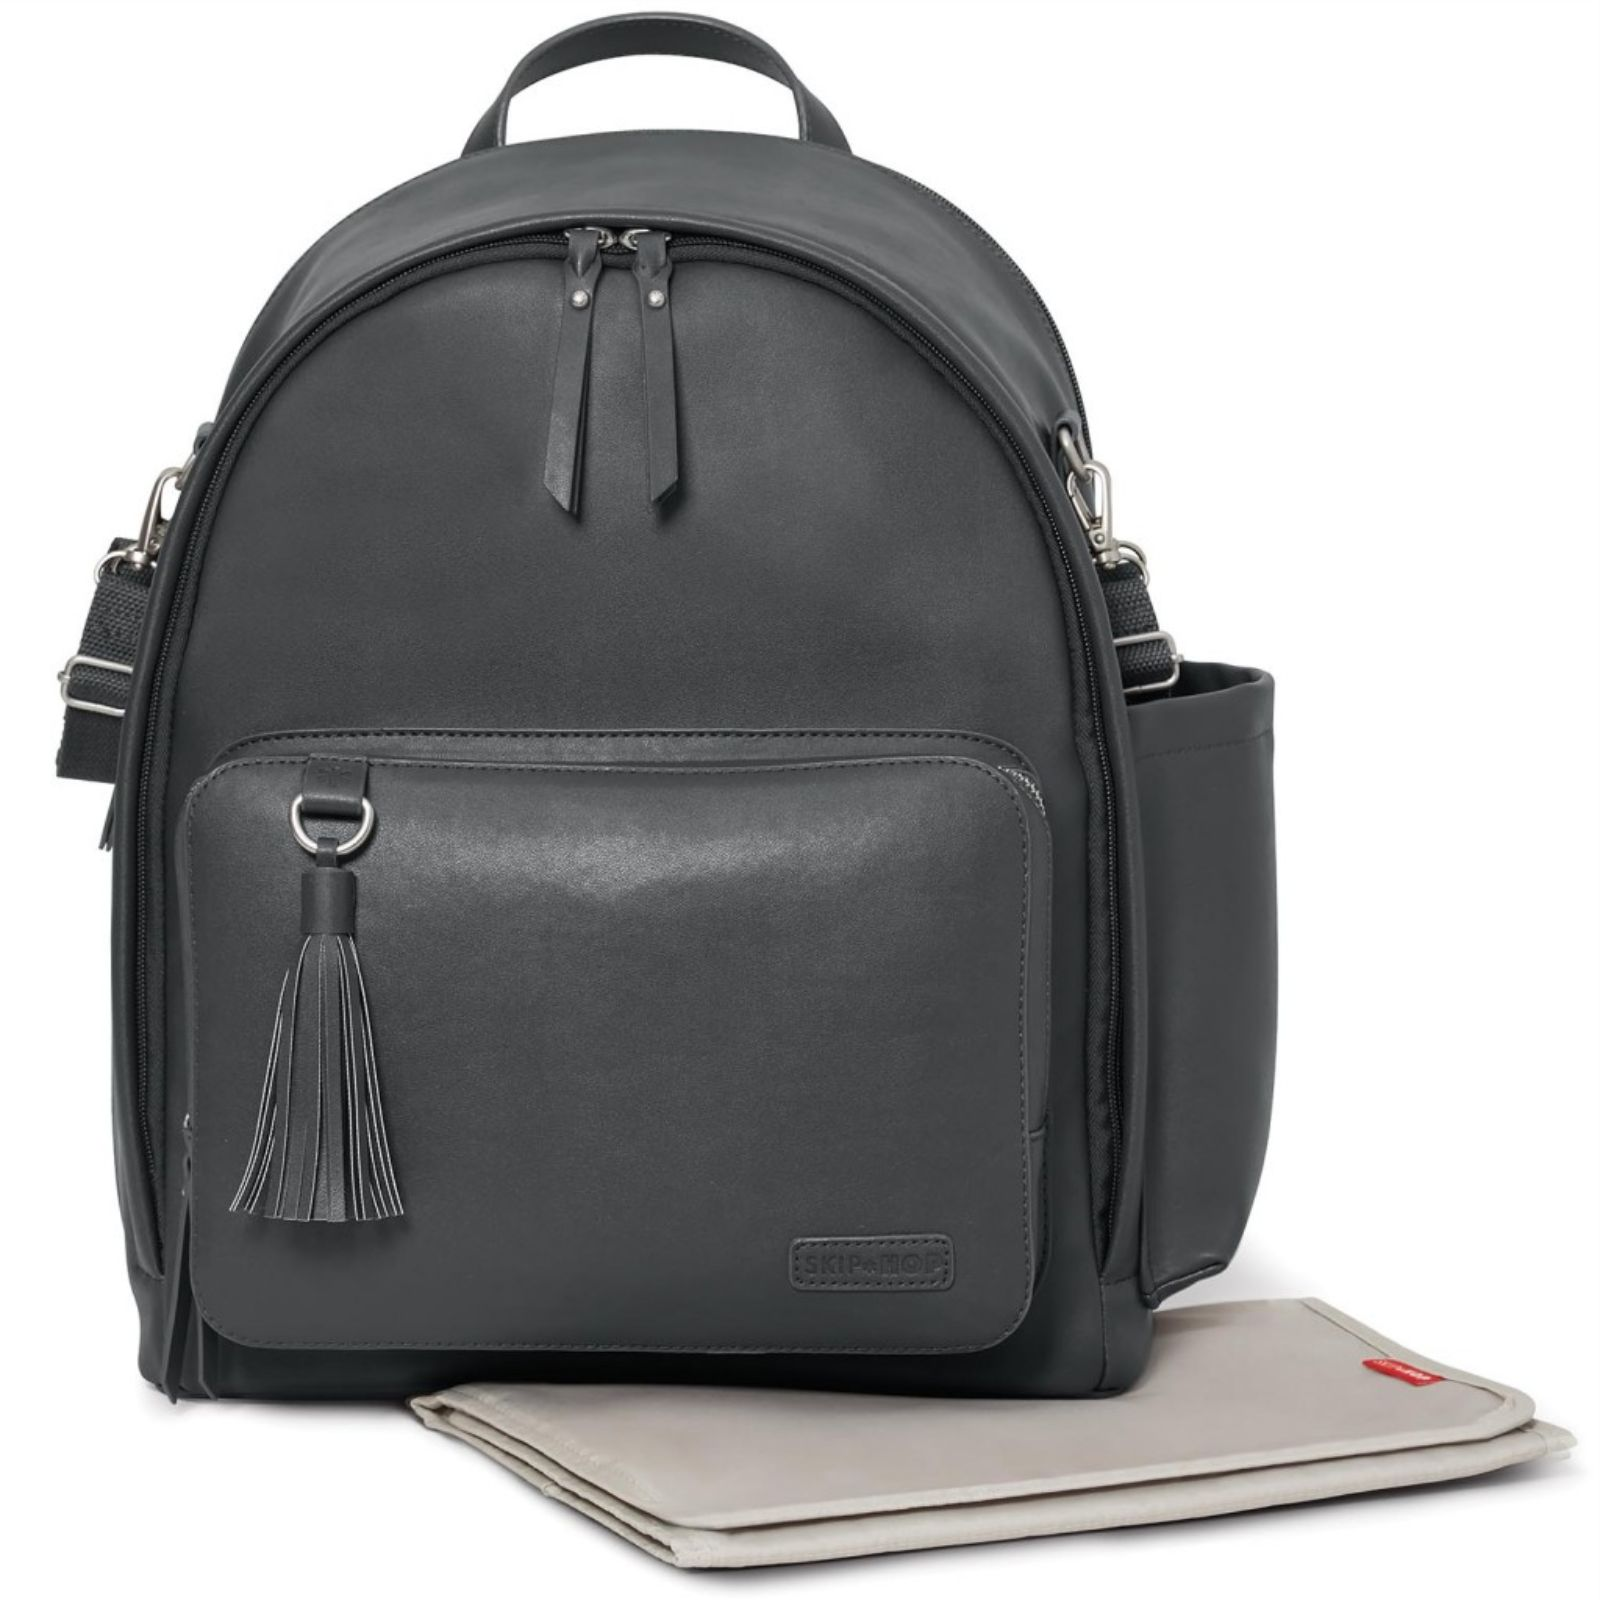 skip hop greenwich simply chic backpack changing bag smoke buy at online4baby. Black Bedroom Furniture Sets. Home Design Ideas